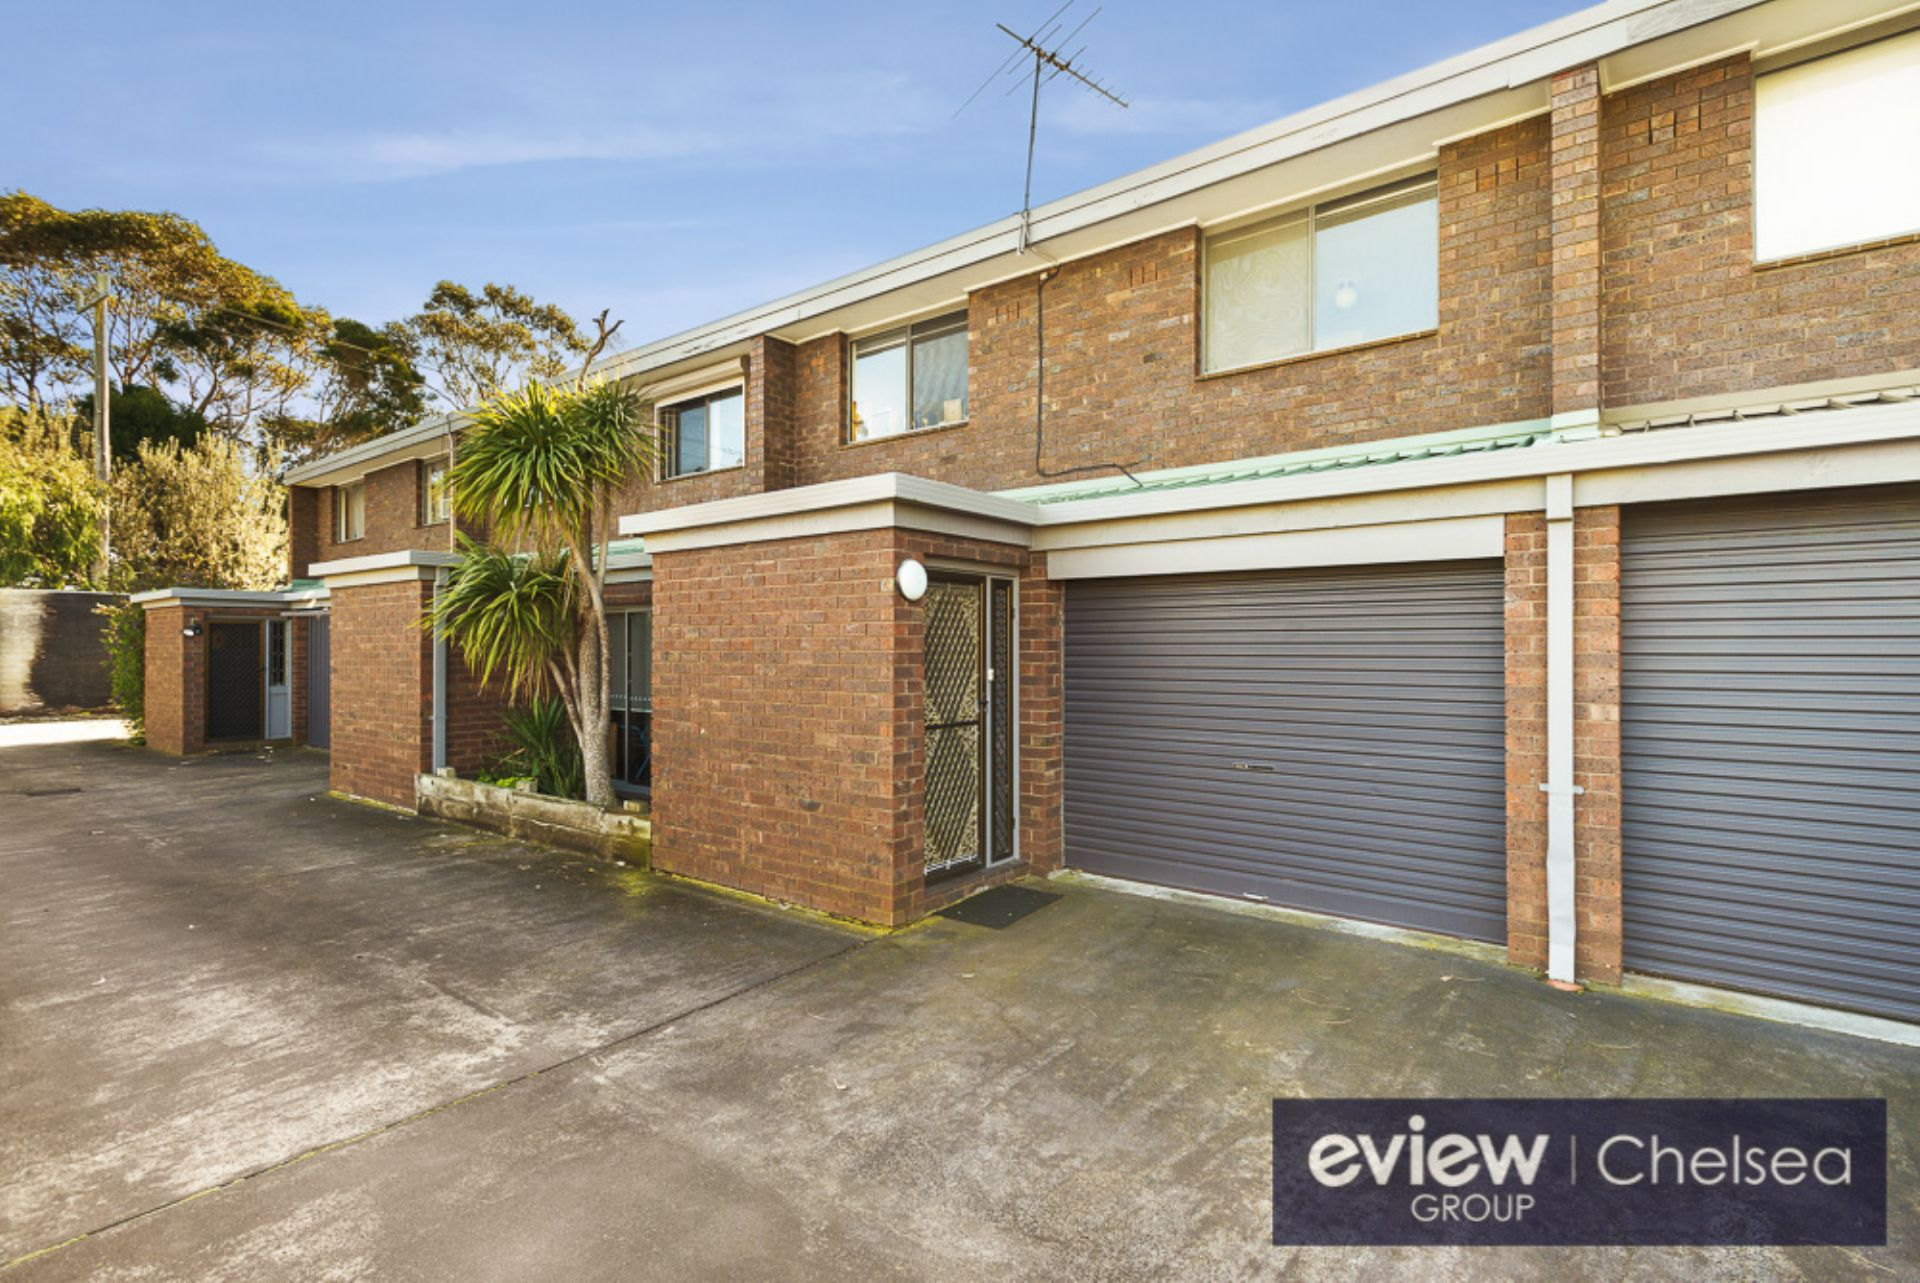 18/17-21 Claude Street, SEAFORD, VIC, 3198 - Image